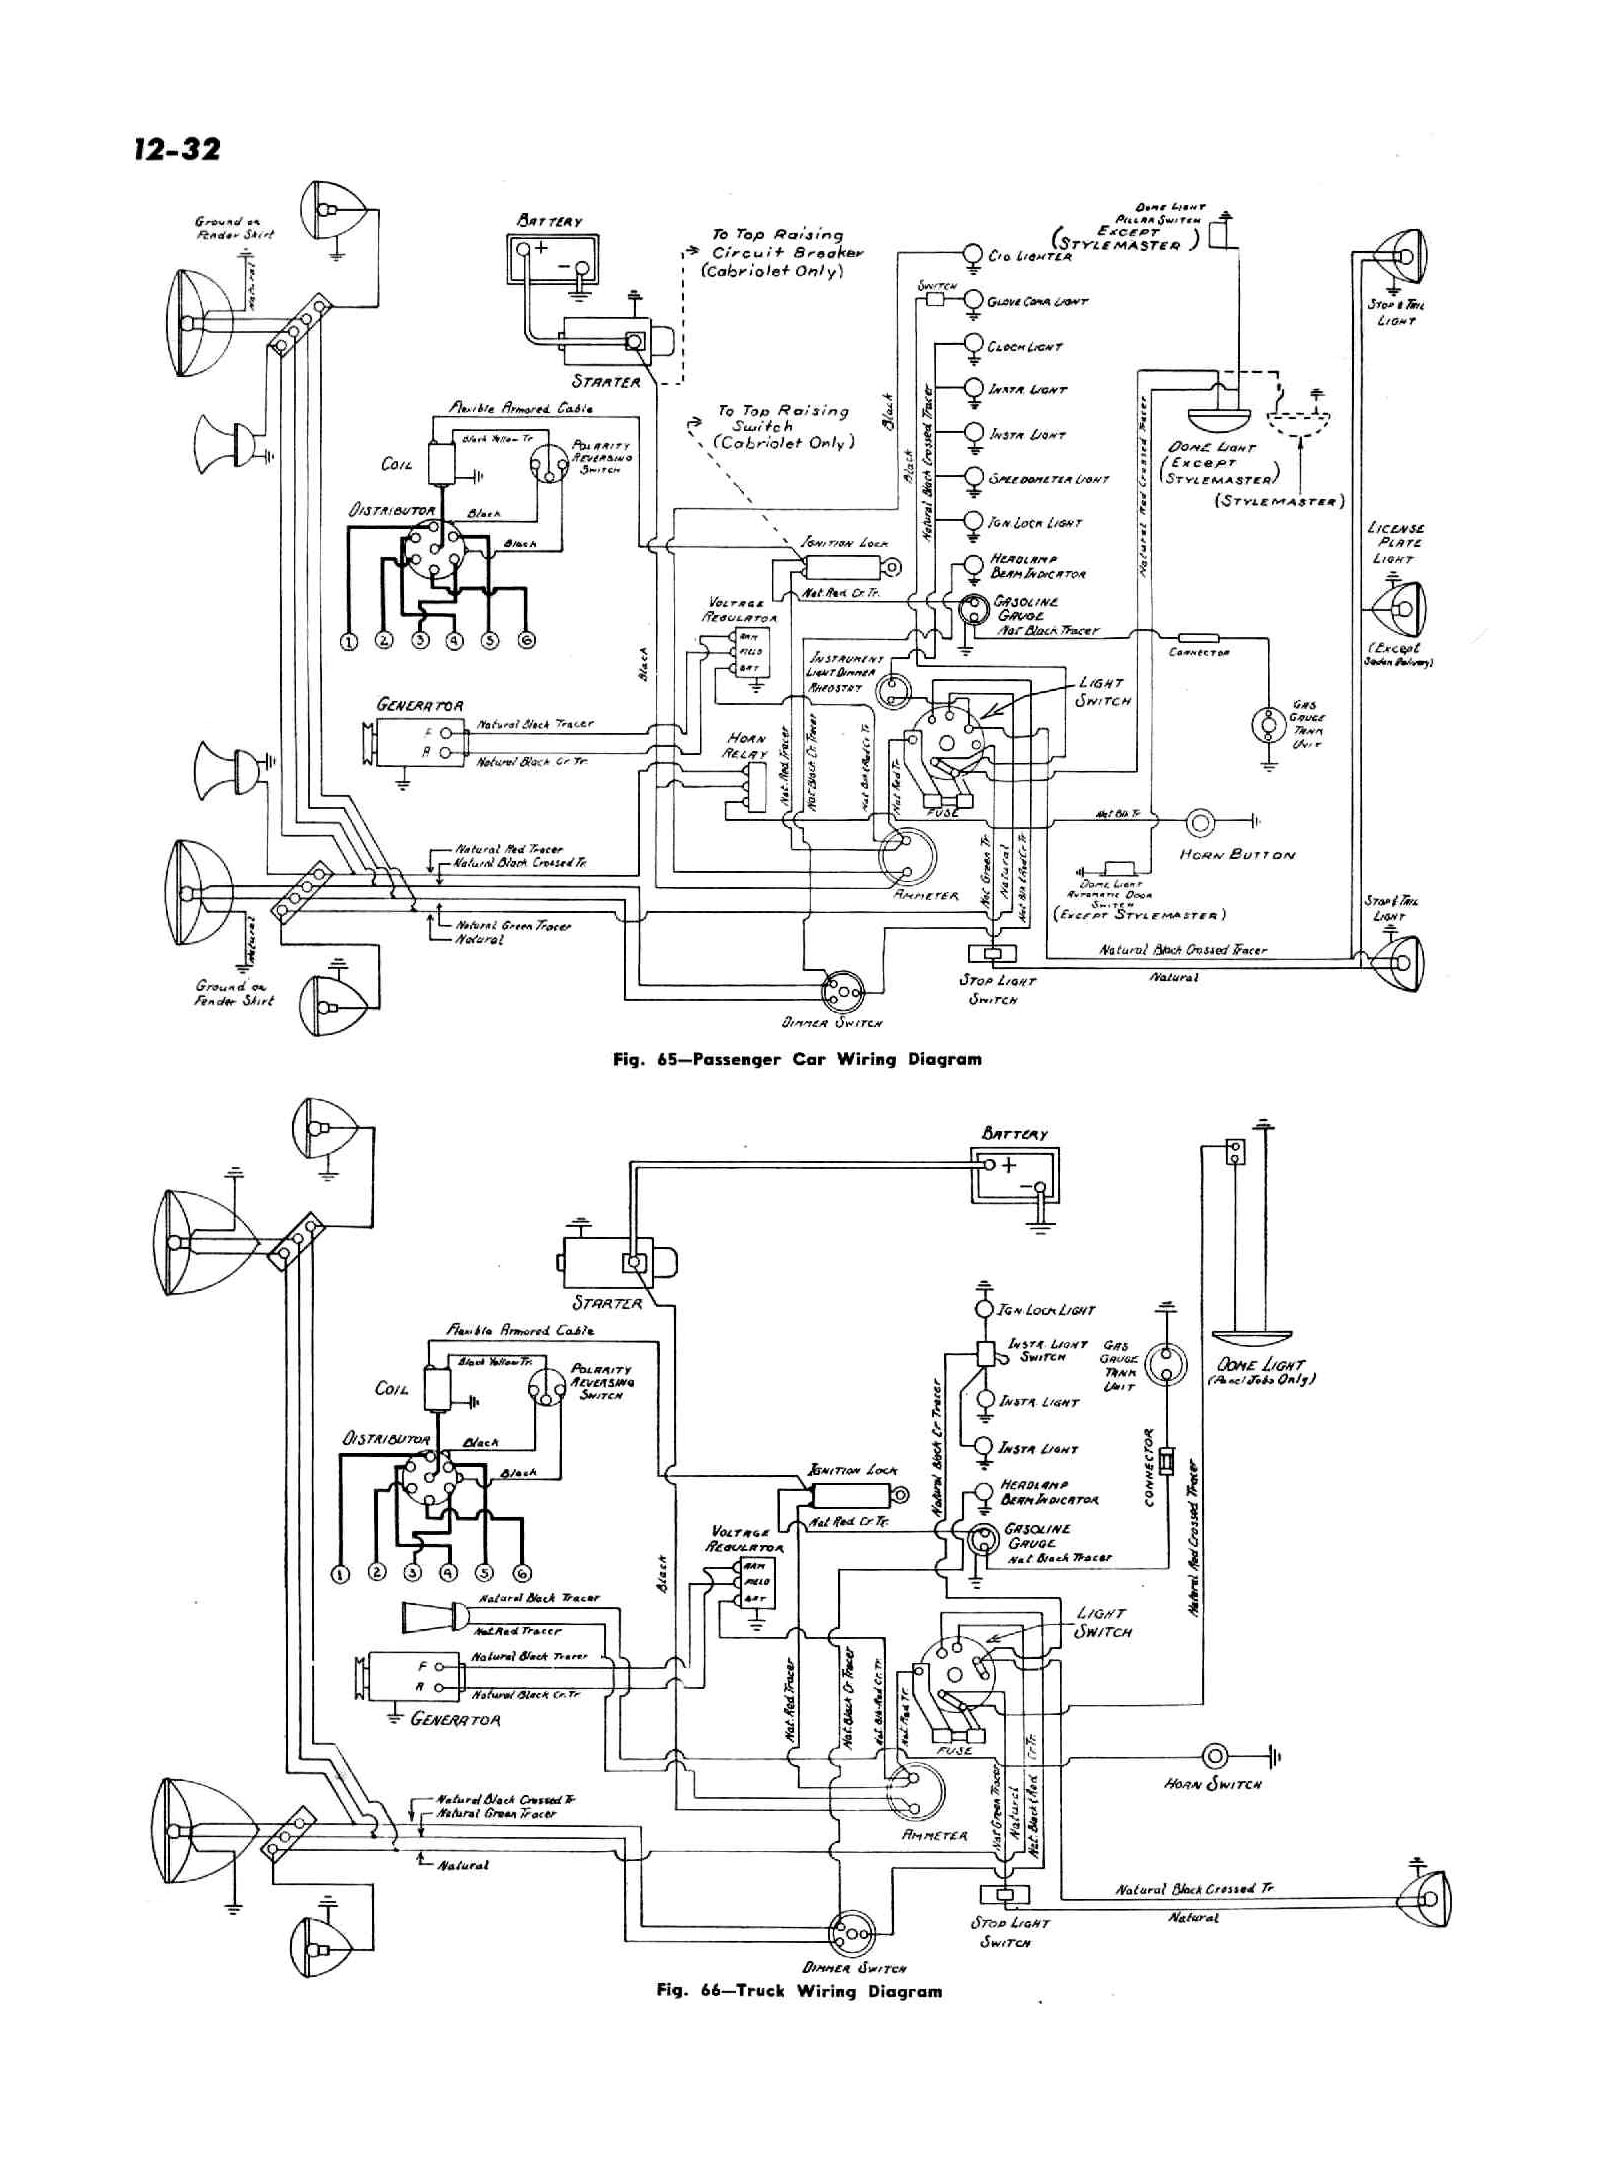 4247csm1232 chevy wiring diagrams chevy wiring diagrams at n-0.co